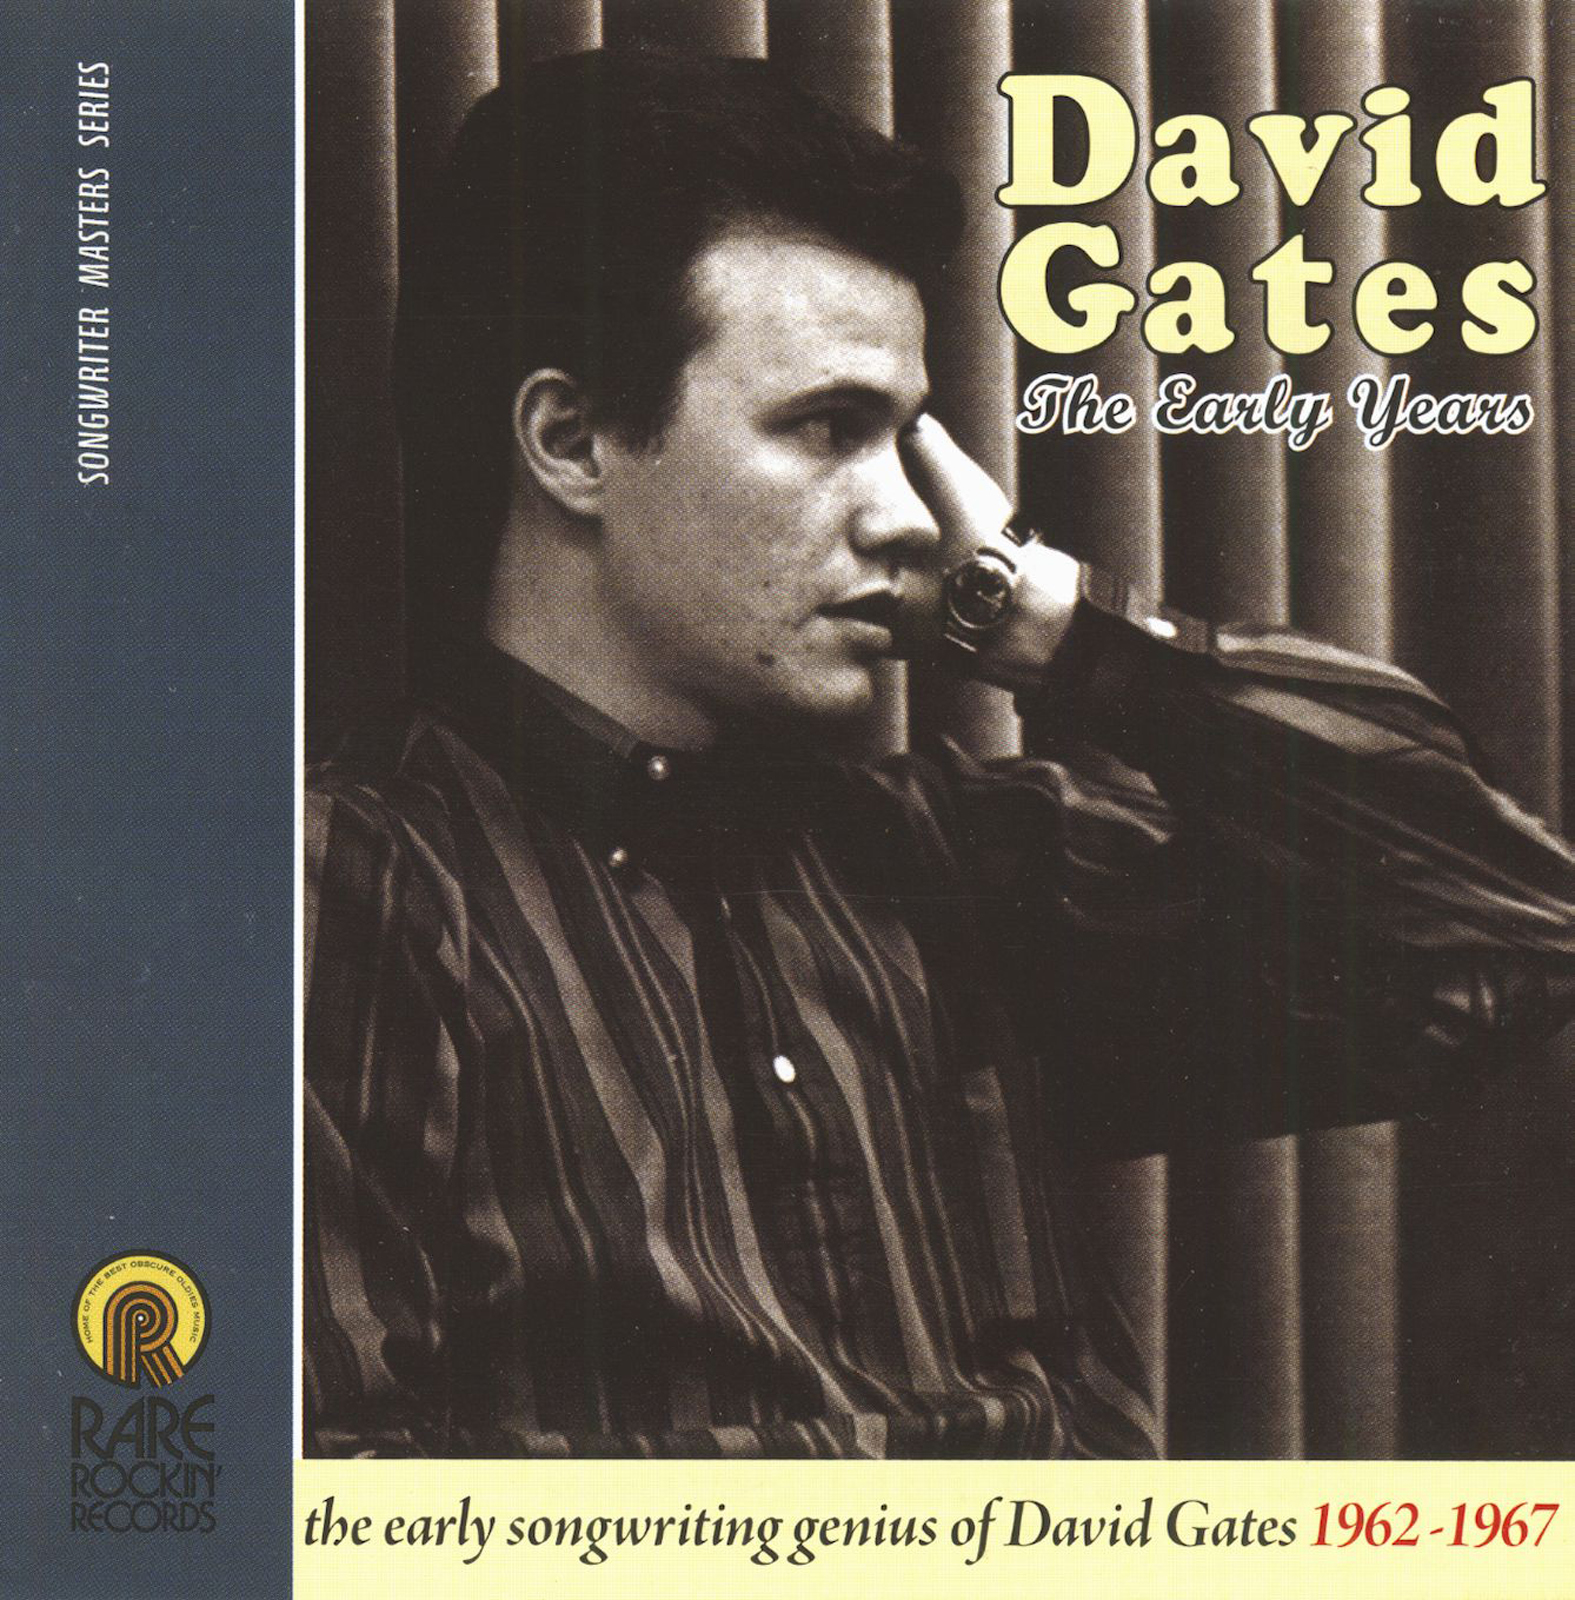 David Gates Songwriter The Early Years 1962 67 Pop Concept Theme Albums